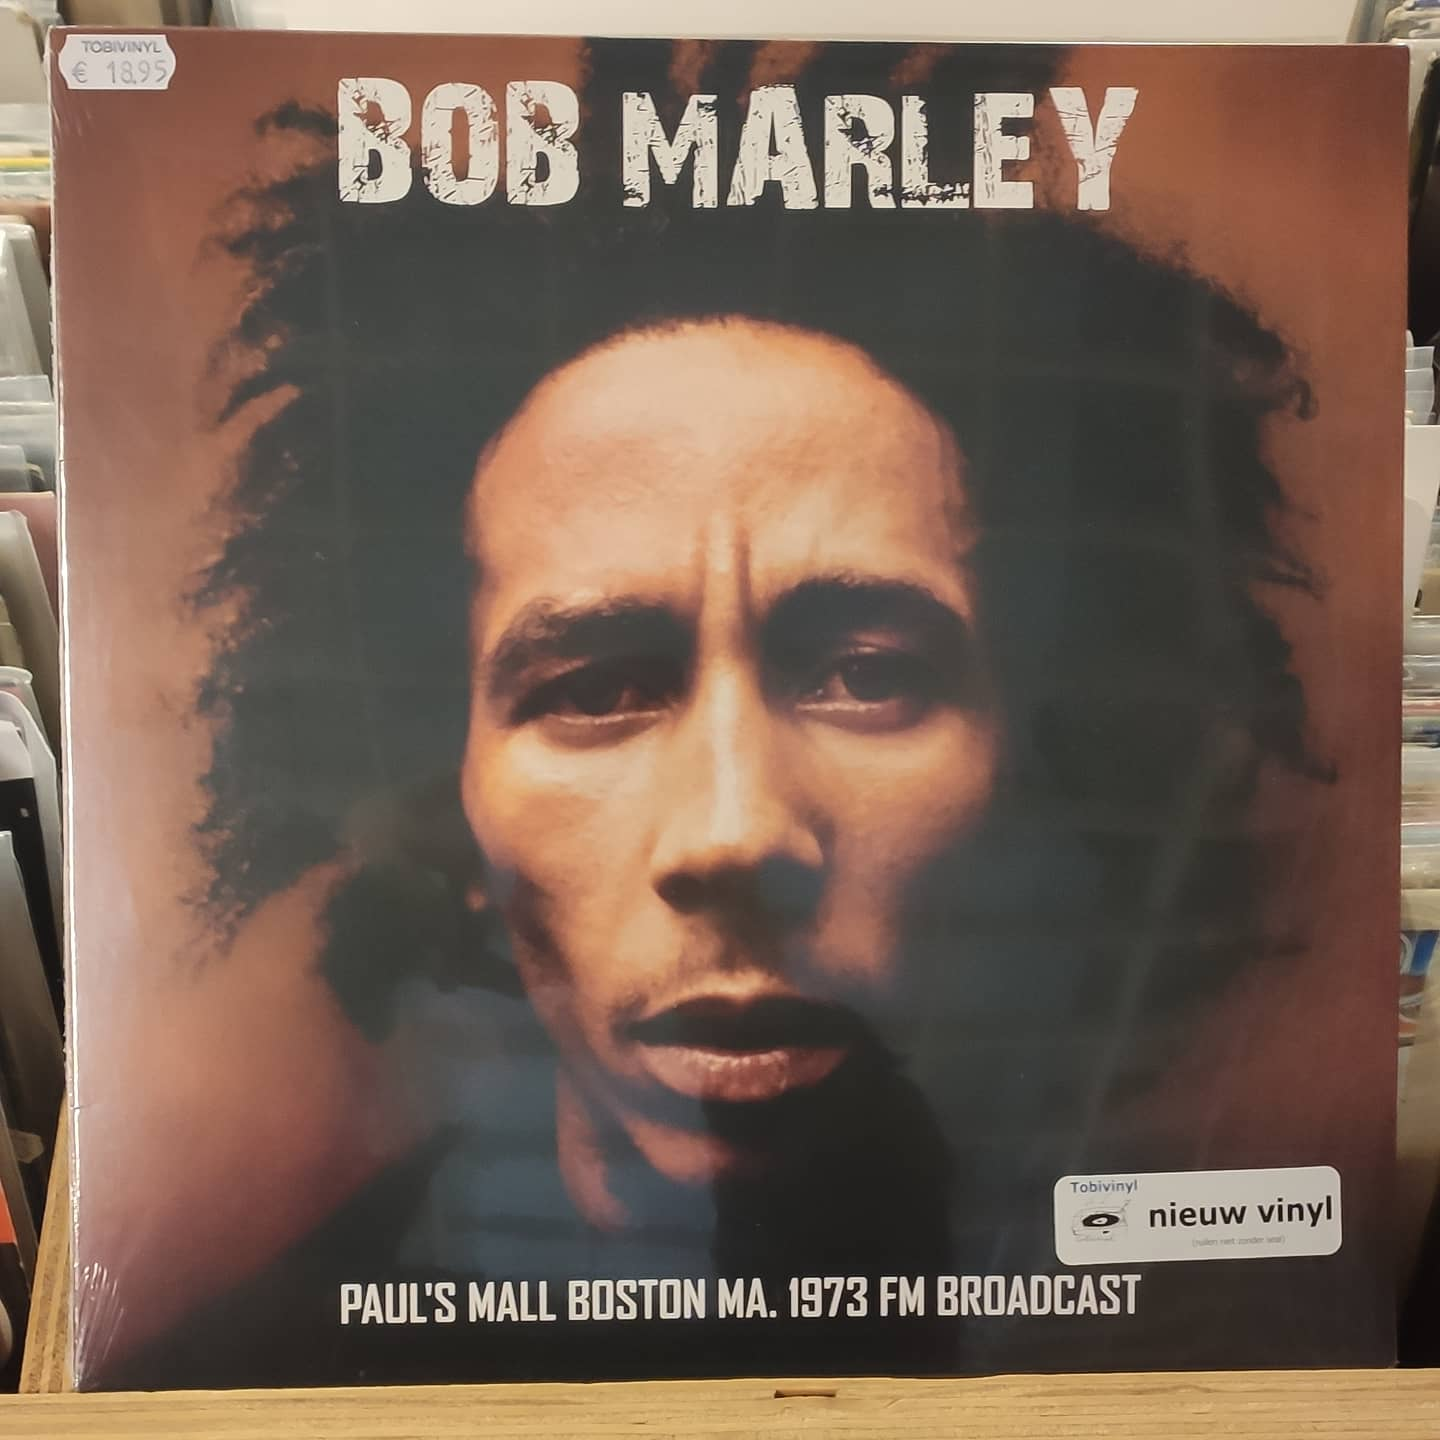 Product image Bob Marley – Paul's Mall Boston MA. 1973 FM Broadcast – LP Nieuw